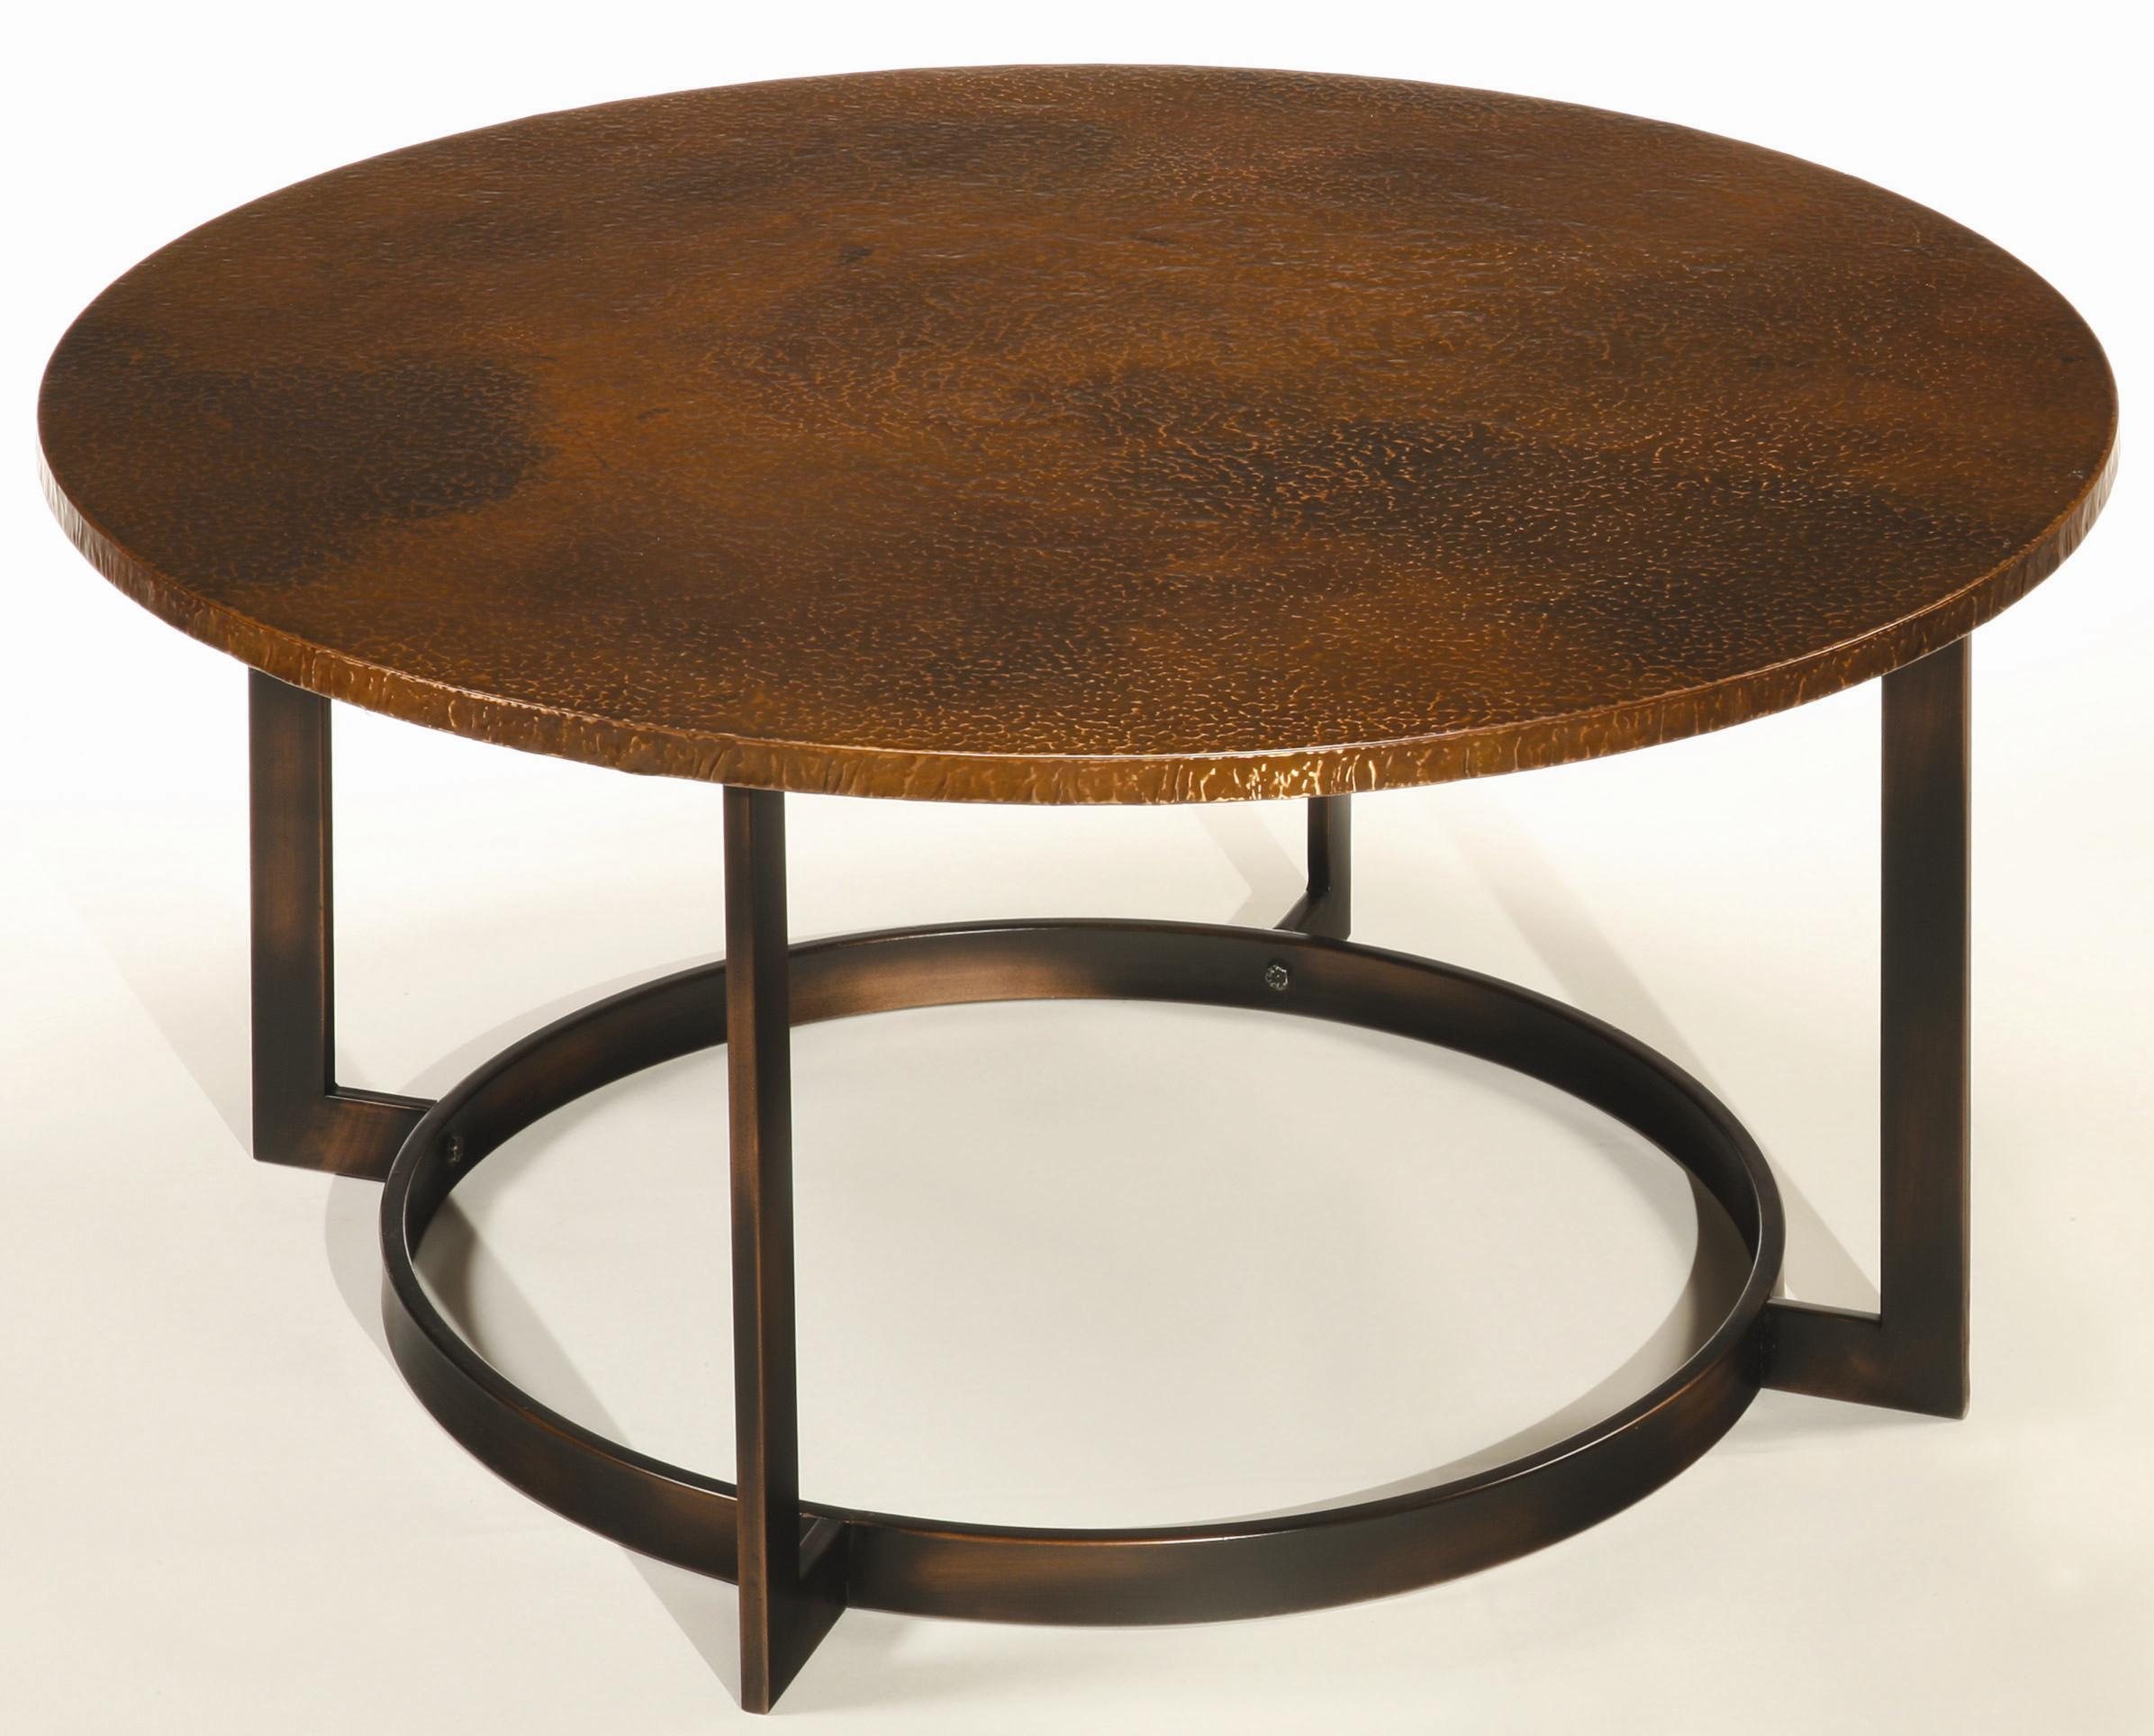 then-the-feel-of-the-copper-coffee-table-is-actually-classic-round-copper-coffee-table-for-sale-the-classic-sense-originates-from-the-brown-color-that-is-sweet (Image 10 of 10)